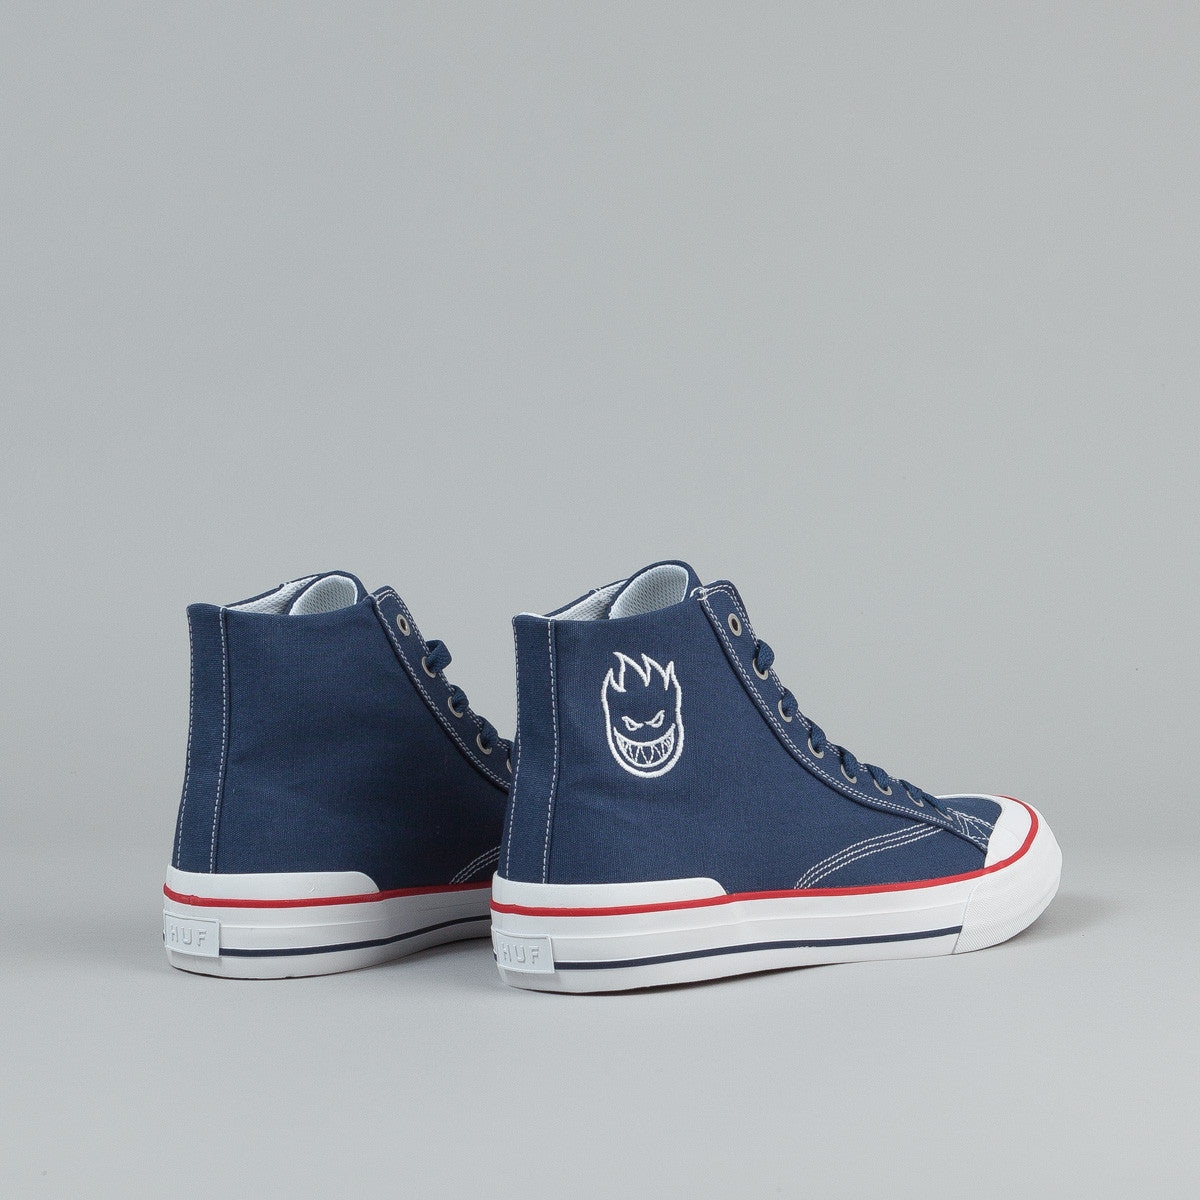 HUF X Spitfire Classic Hi Shoes - Navy